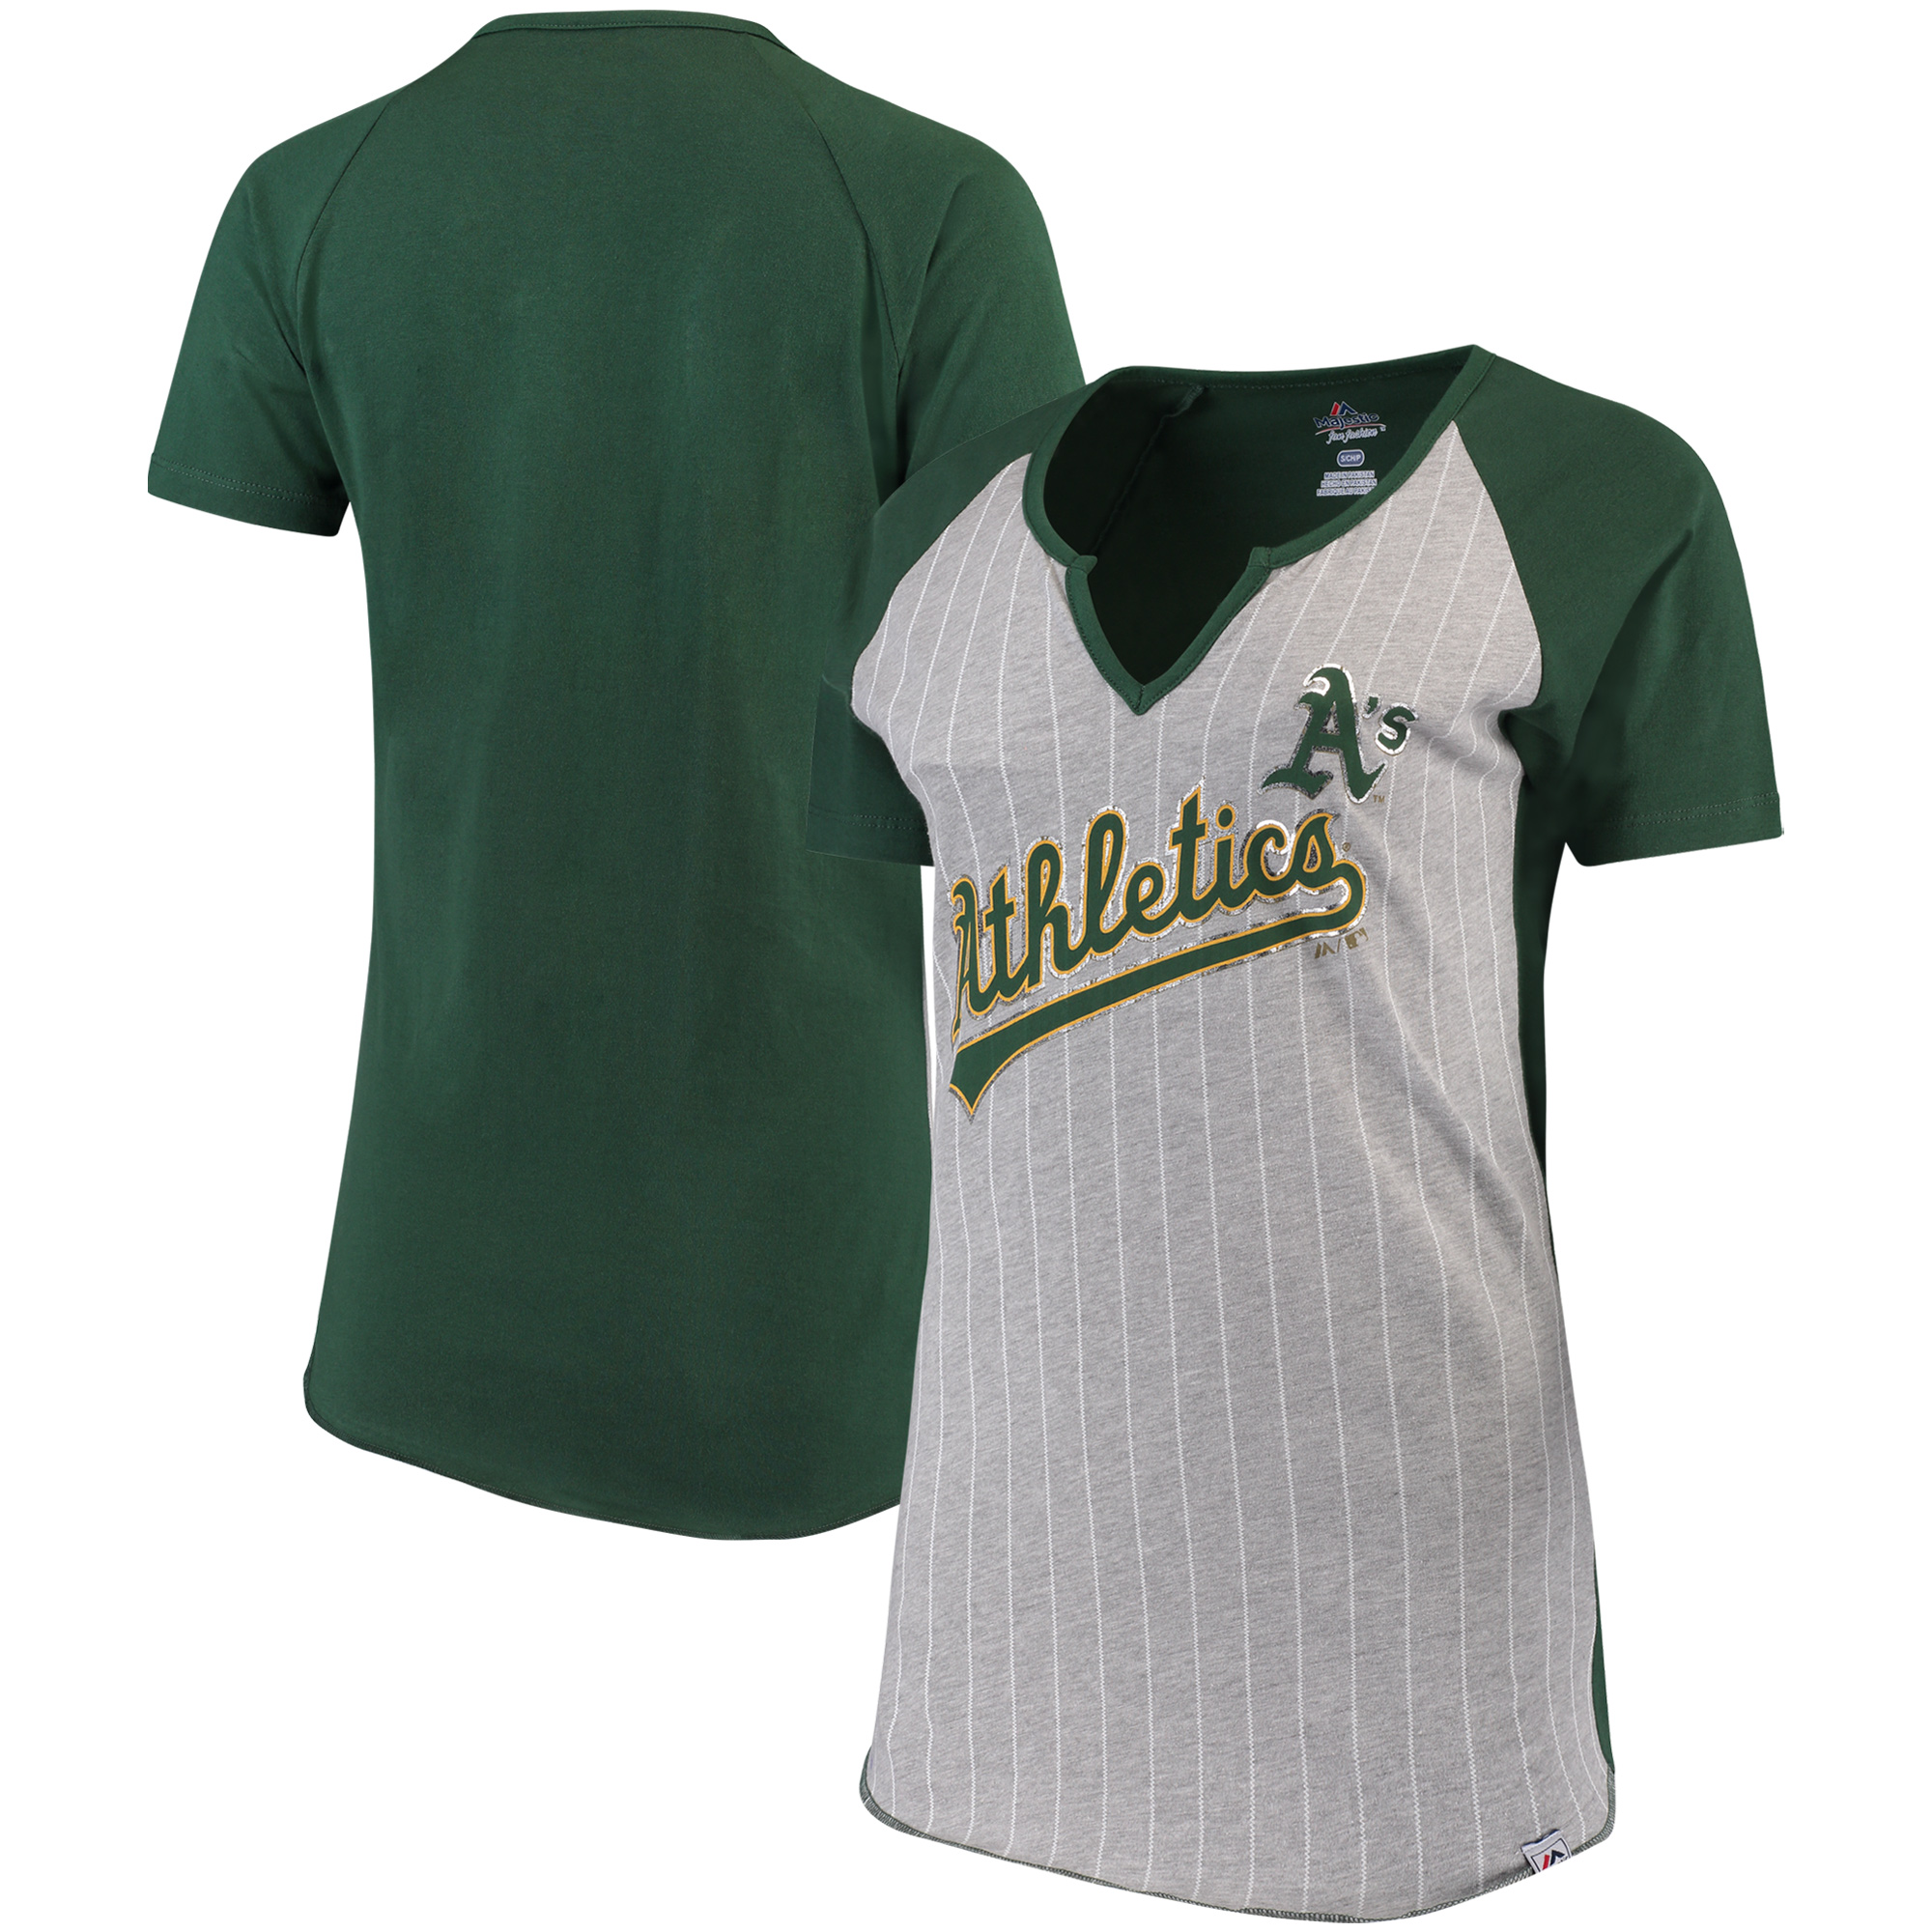 Oakland Athletics Majestic Women's From the Stretch V-Notch T-Shirt - Gray/Green